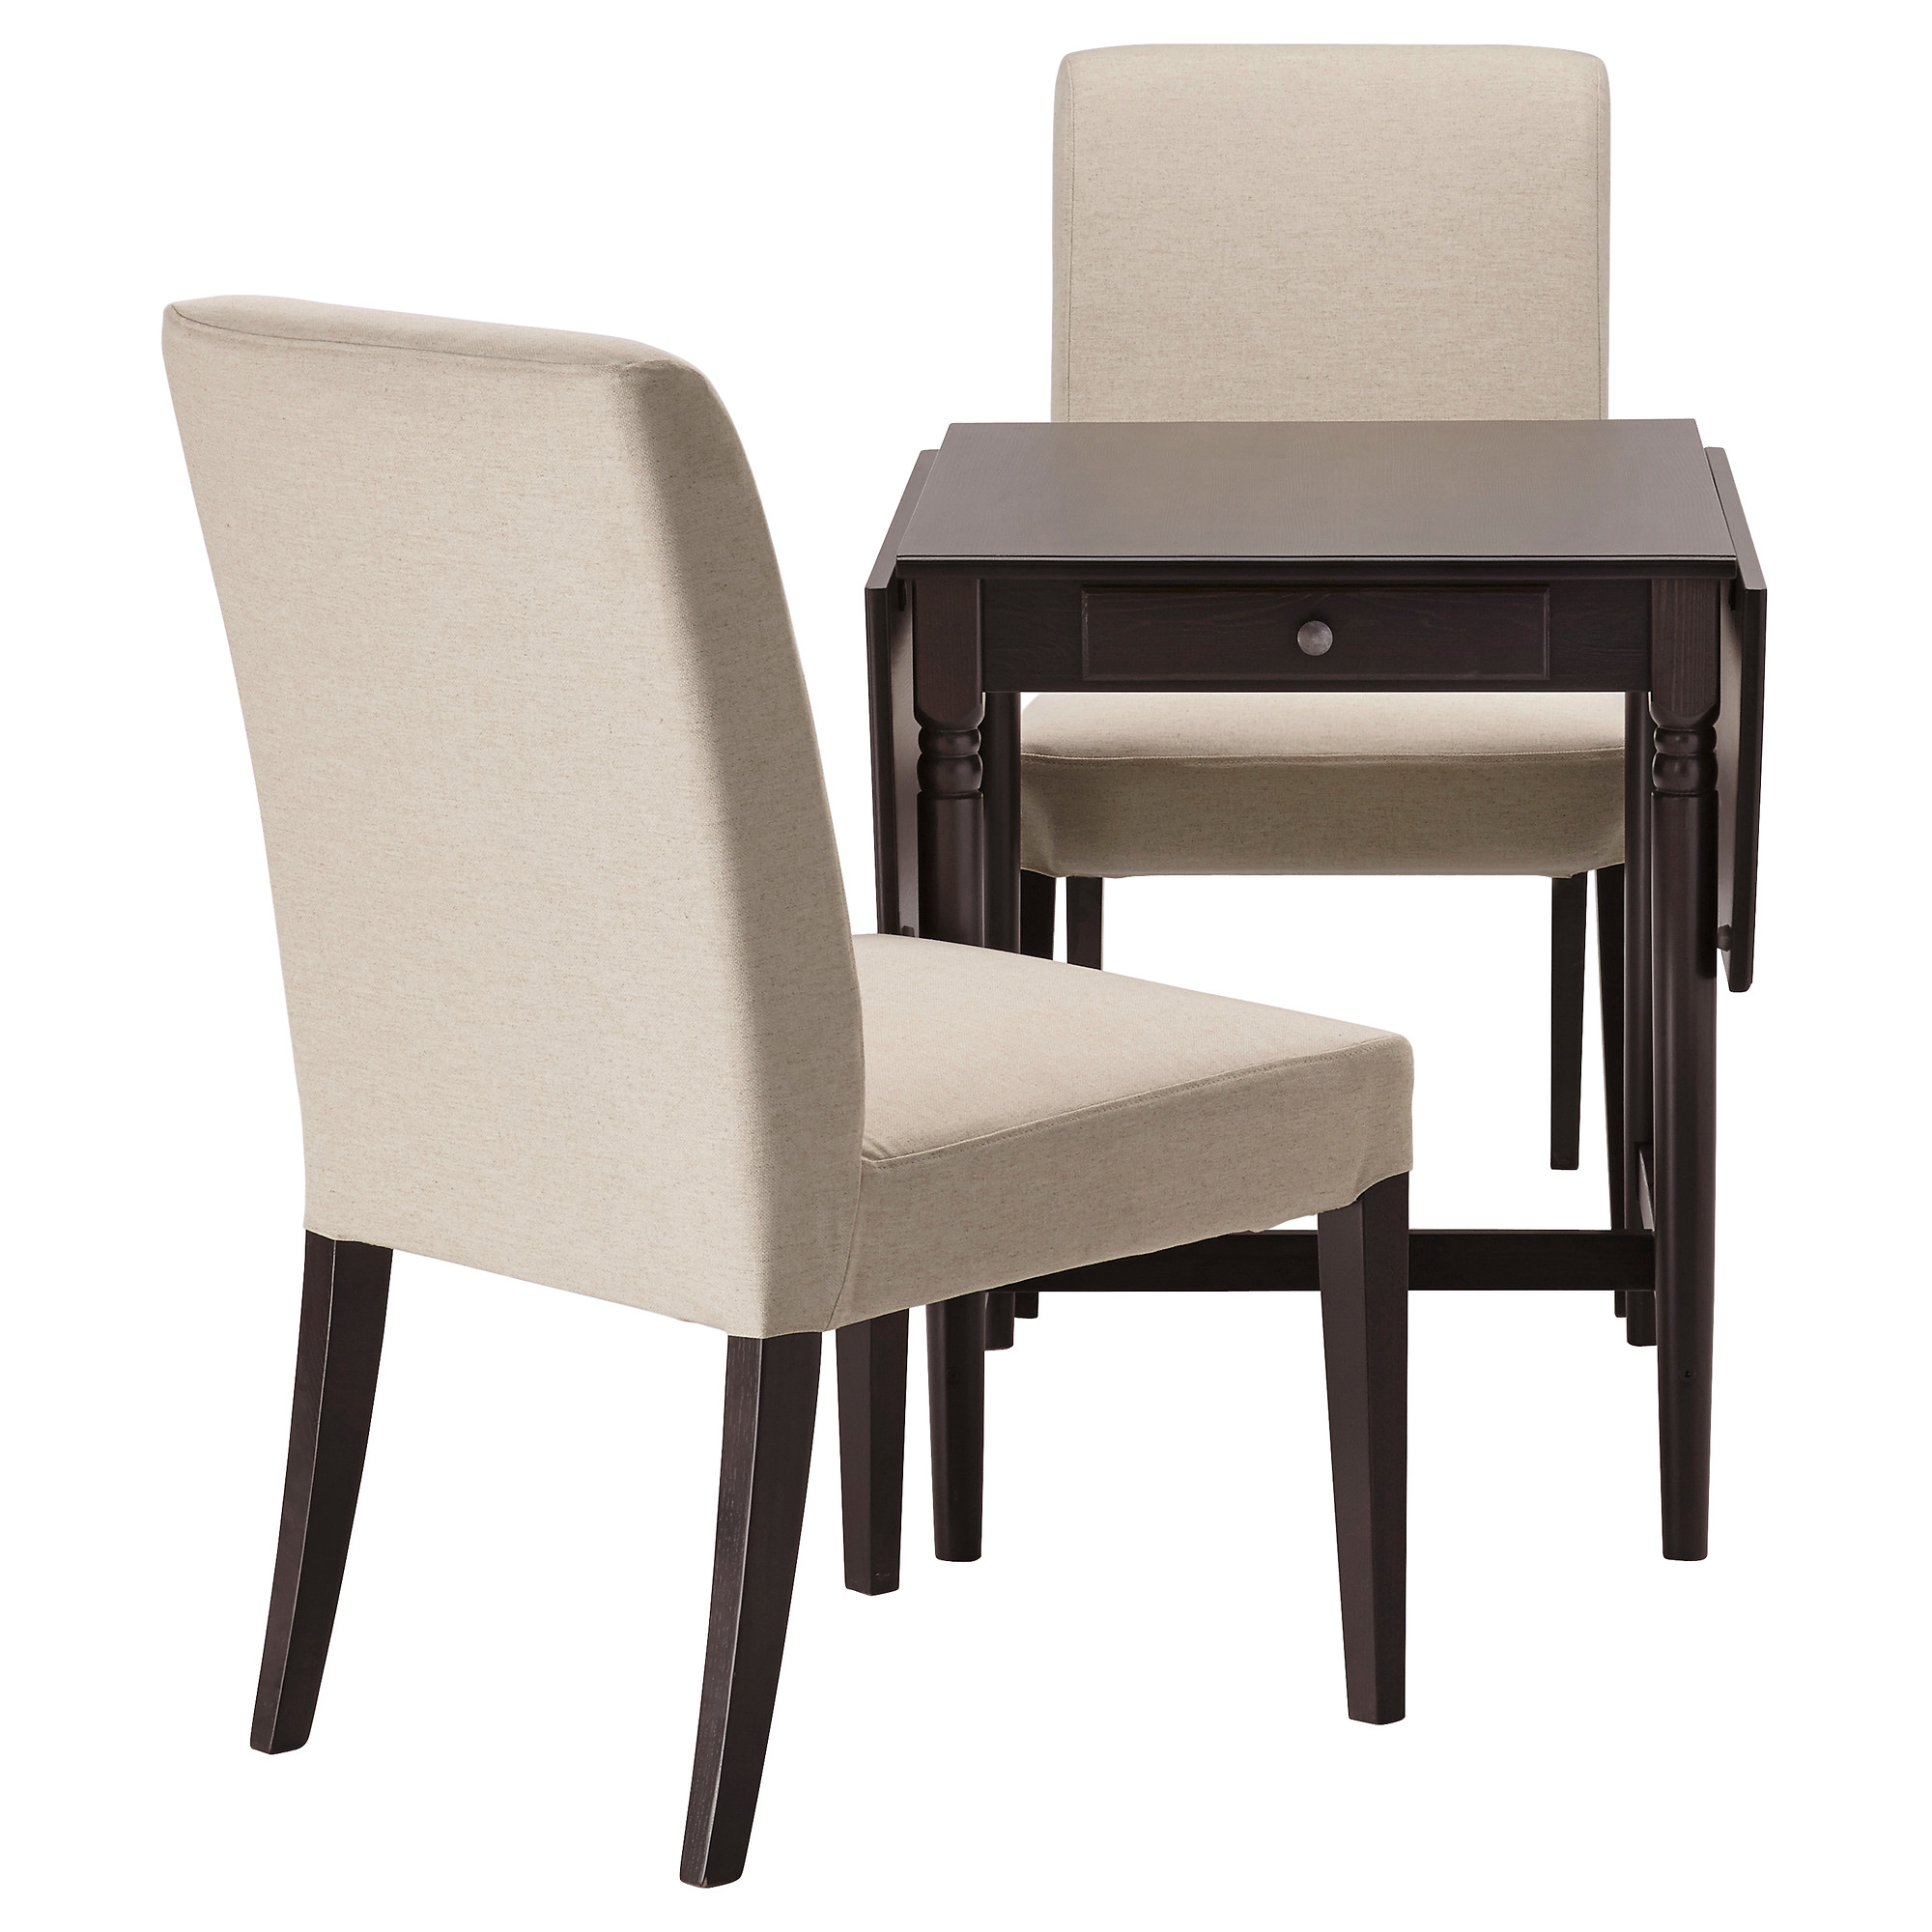 Amazing Design Leather Dining Chairs Ikea 37